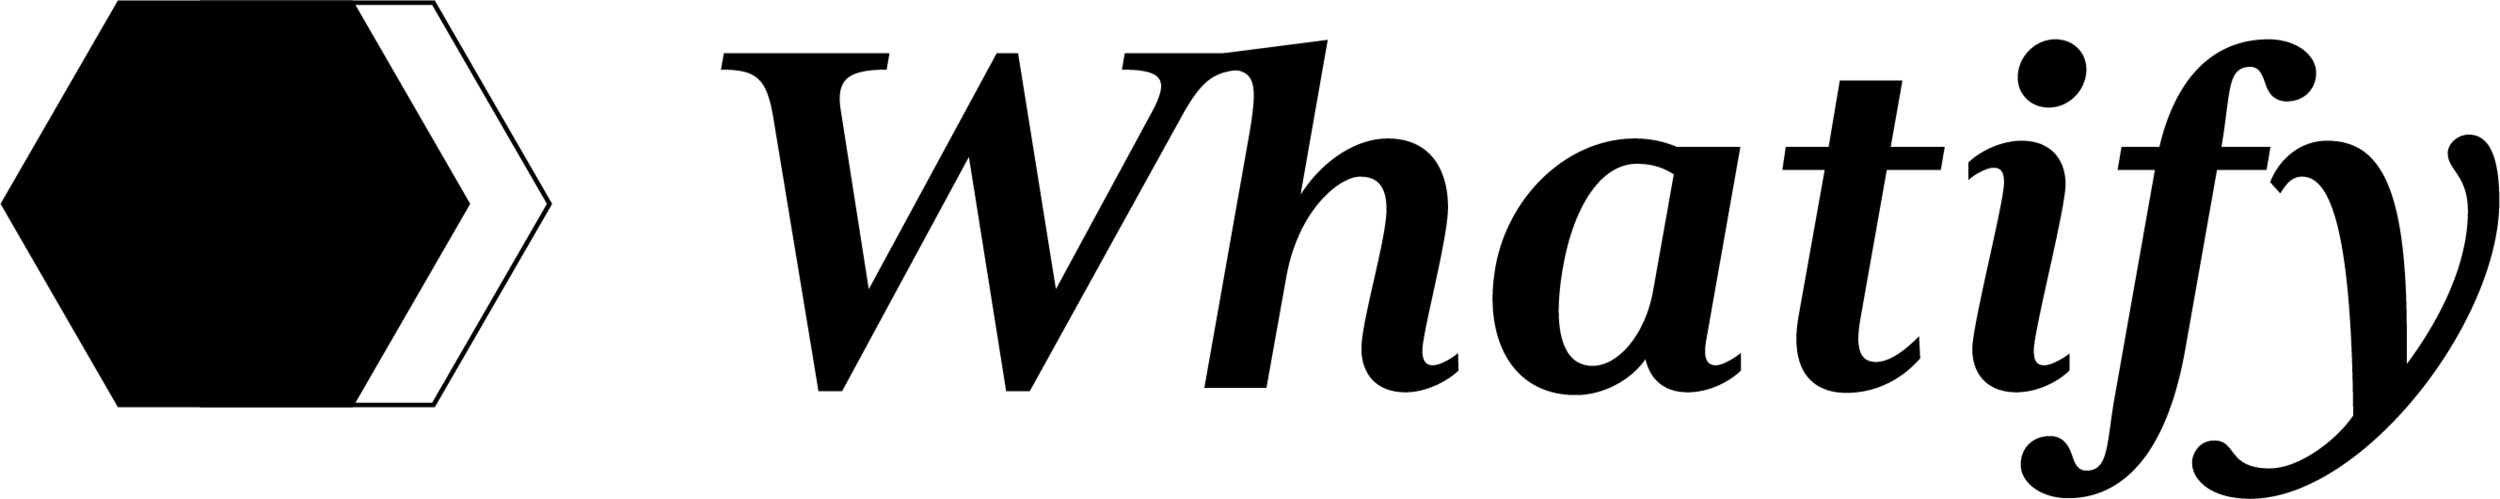 whatify-logo-reversed copy.png